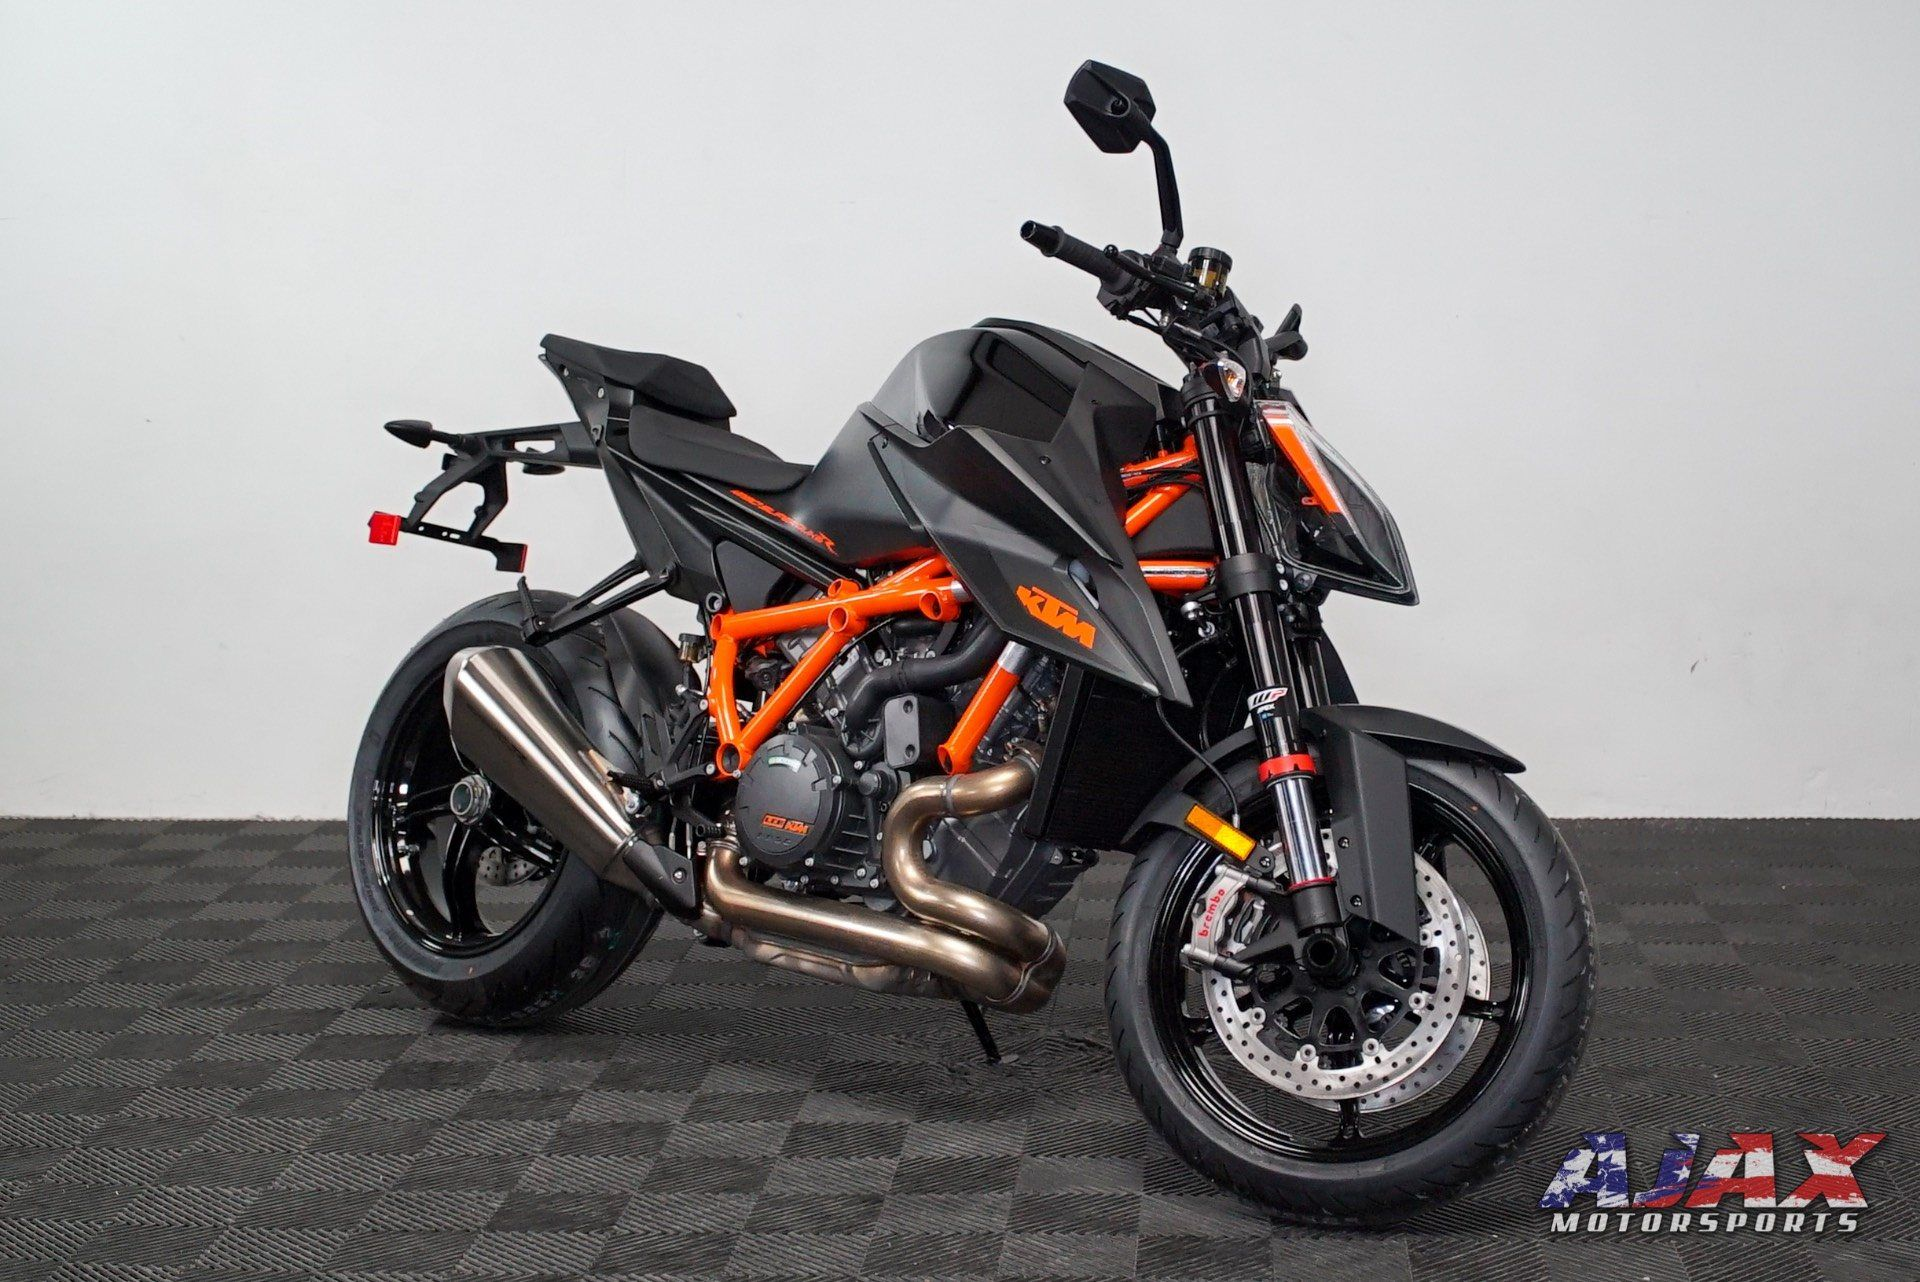 2020 KTM 1290 Super Duke R in Oklahoma City, Oklahoma - Photo 3